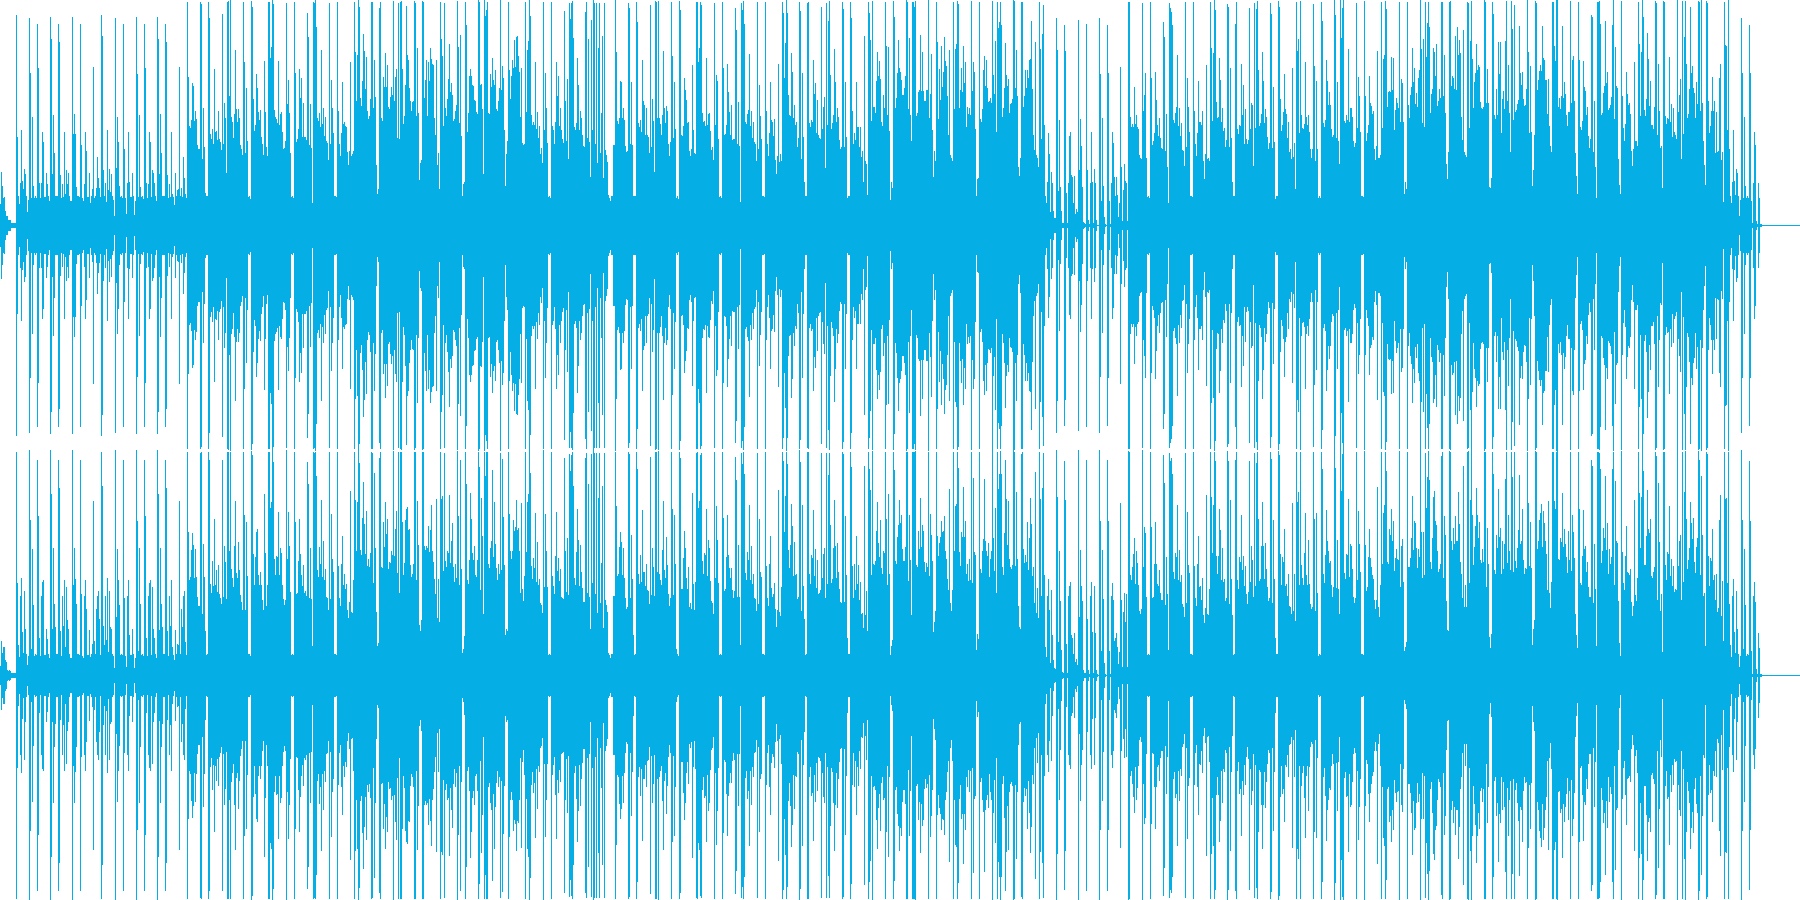 Fantastic, eerie and suspenseful tension's reproduced waveform